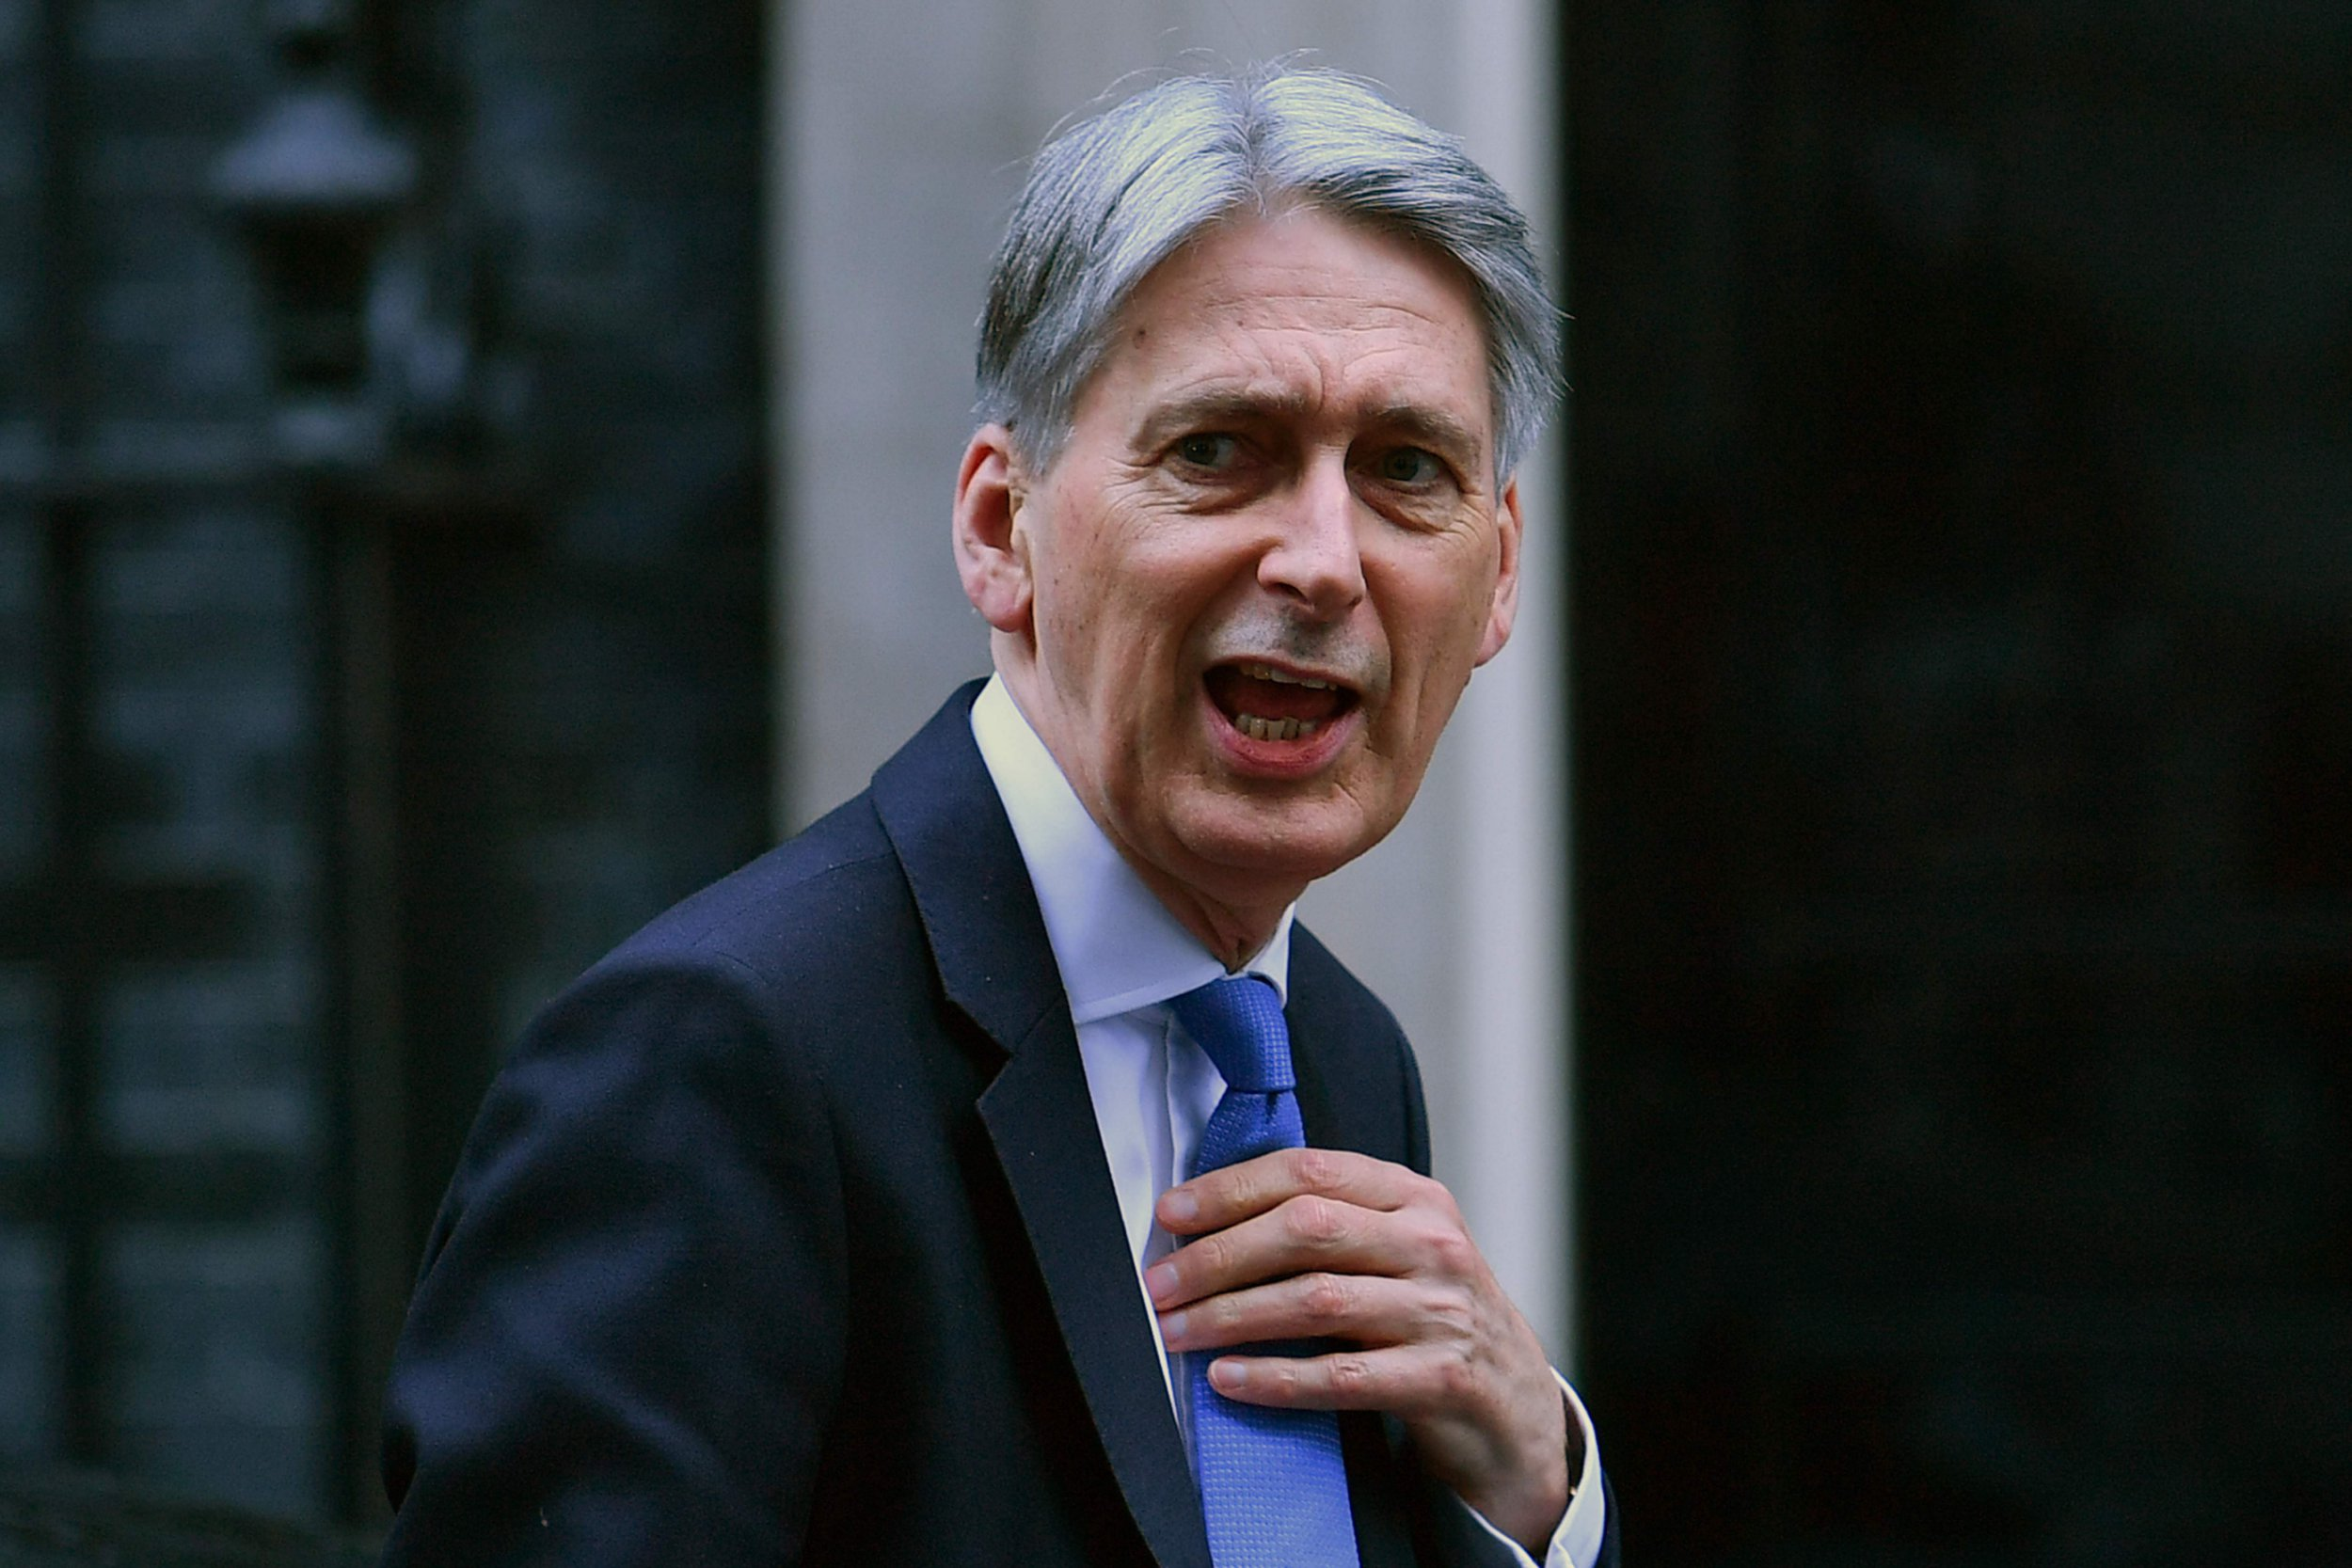 Britain's Chancellor of the Exchequer Philip Hammond arrives at 10 Downing Street in London on March 12, 2019. - British finance minister Philip Hammond on Wednesday updates the government's spending and tax plans that depend heavily on the nature of Brexit. The Spring Statement, an update on the main annual budget announcement last October, comes less than 24 hours after British MPs vote Tuesday on whether to back Prime Minister Theresa May's Brexit deal or risk a 'no deal' departure on March 29. (Photo by Ben STANSALL / AFP)BEN STANSALL/AFP/Getty Images